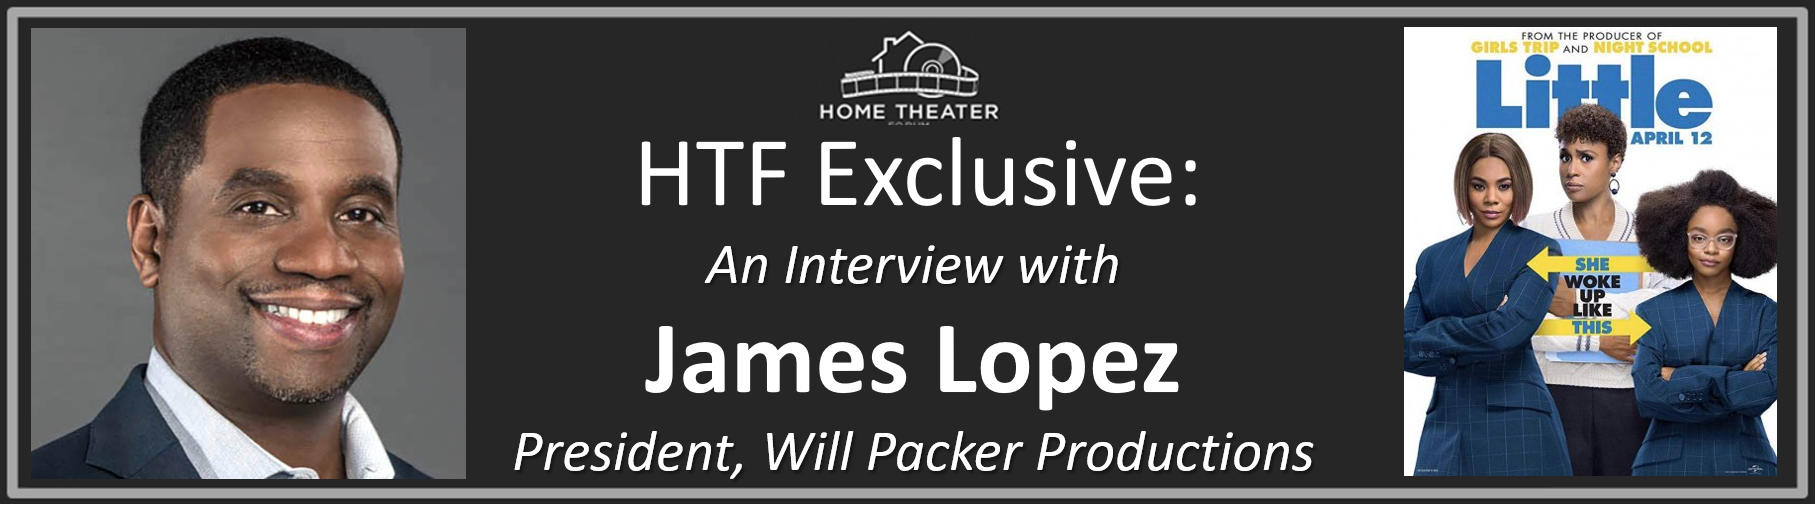 HTF Interview with James Lopez.png